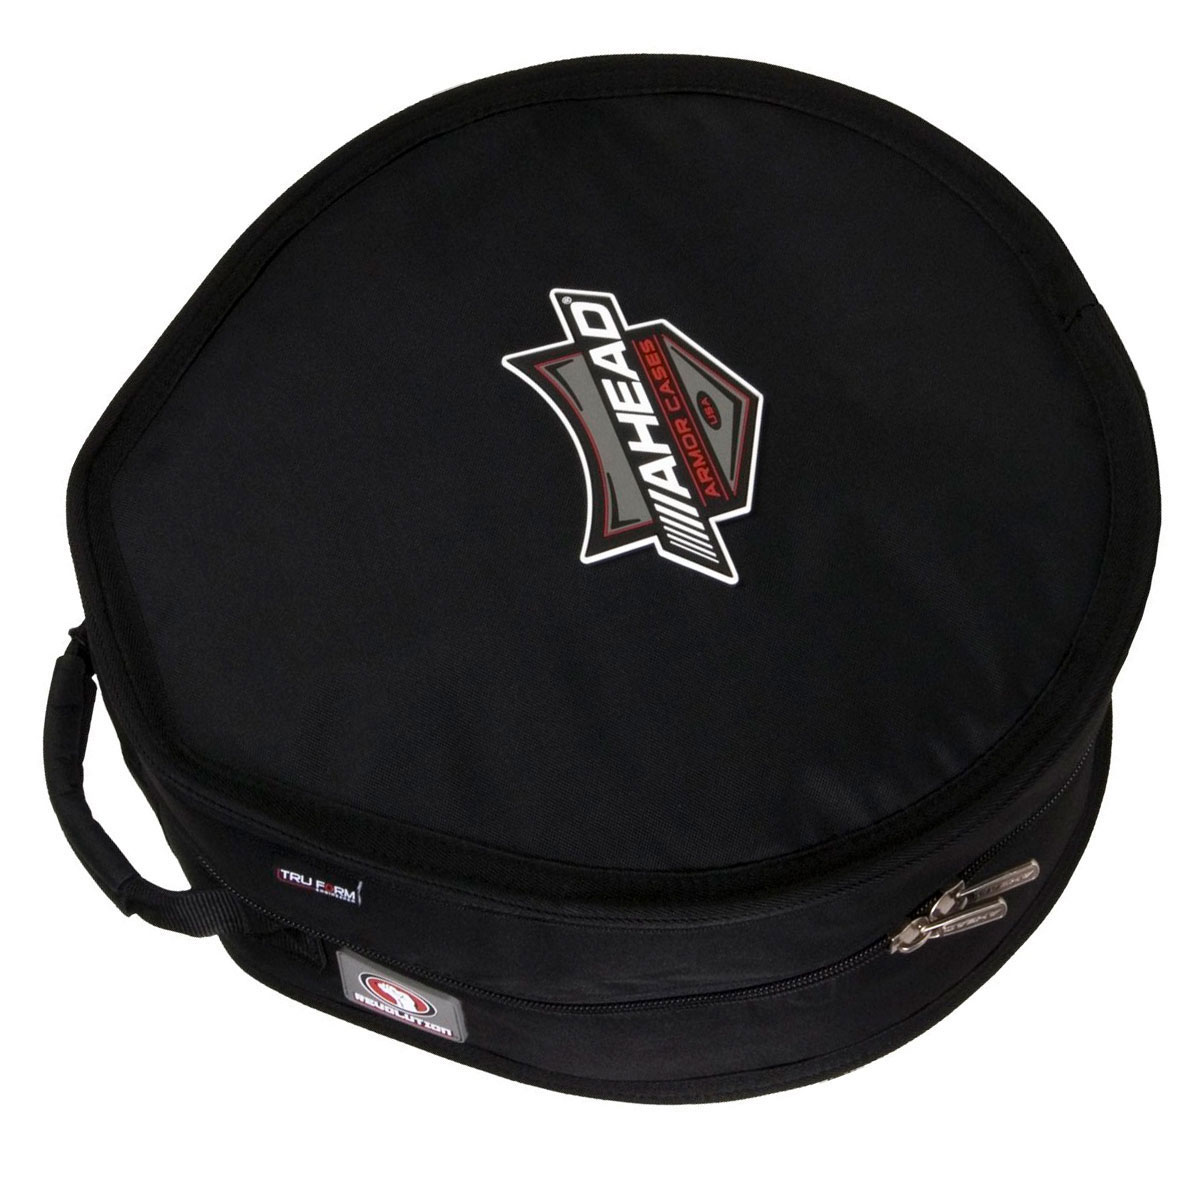 "Ahead Armor 7"" (Deep) x 13"" (Diameter) Snare Case"